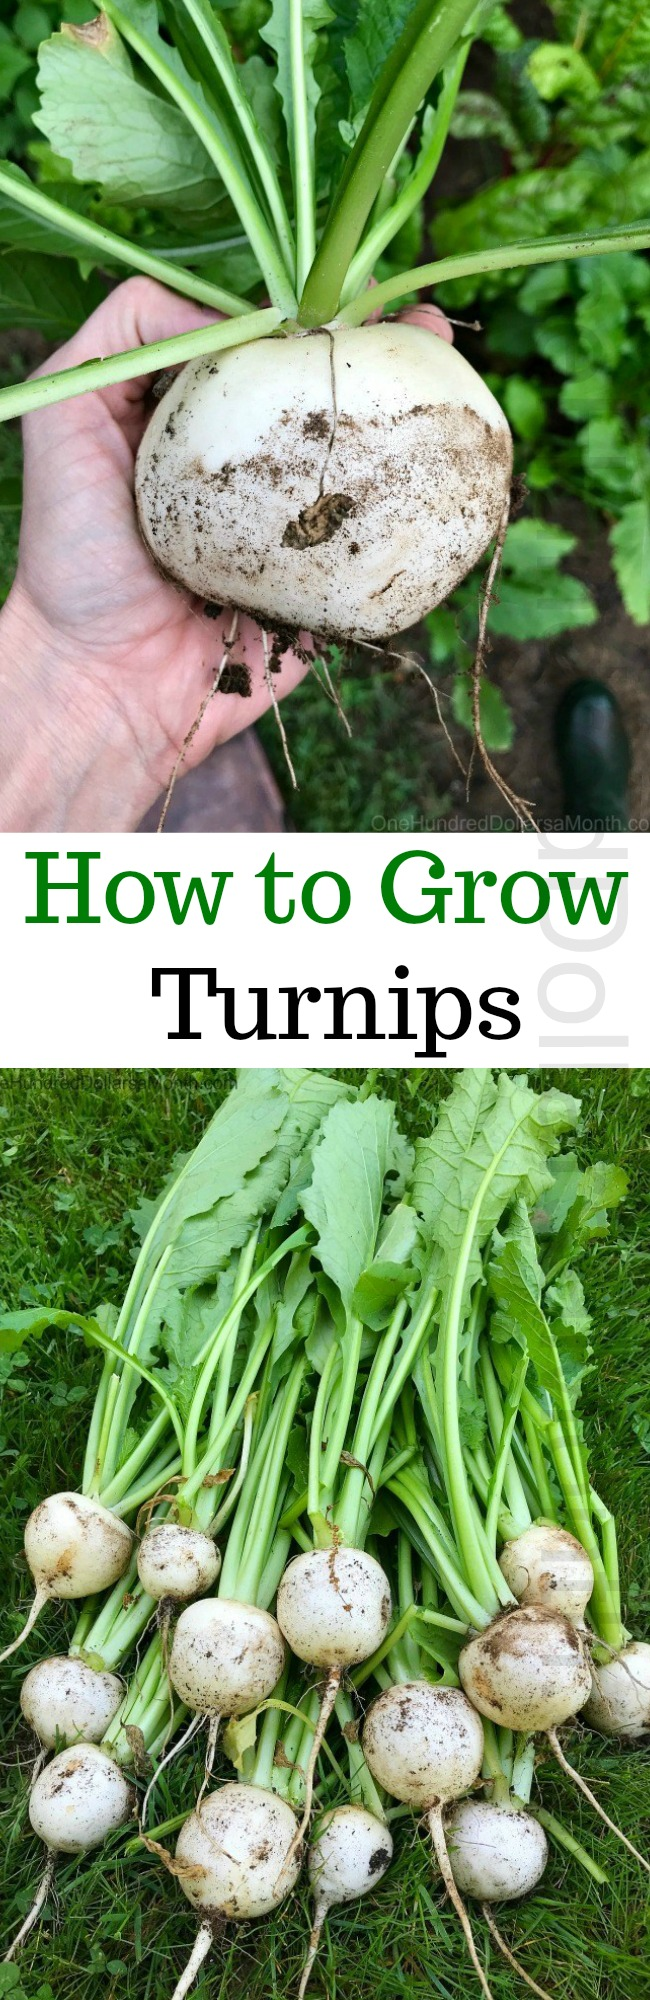 How to Grow Turnips {Start to Finish}